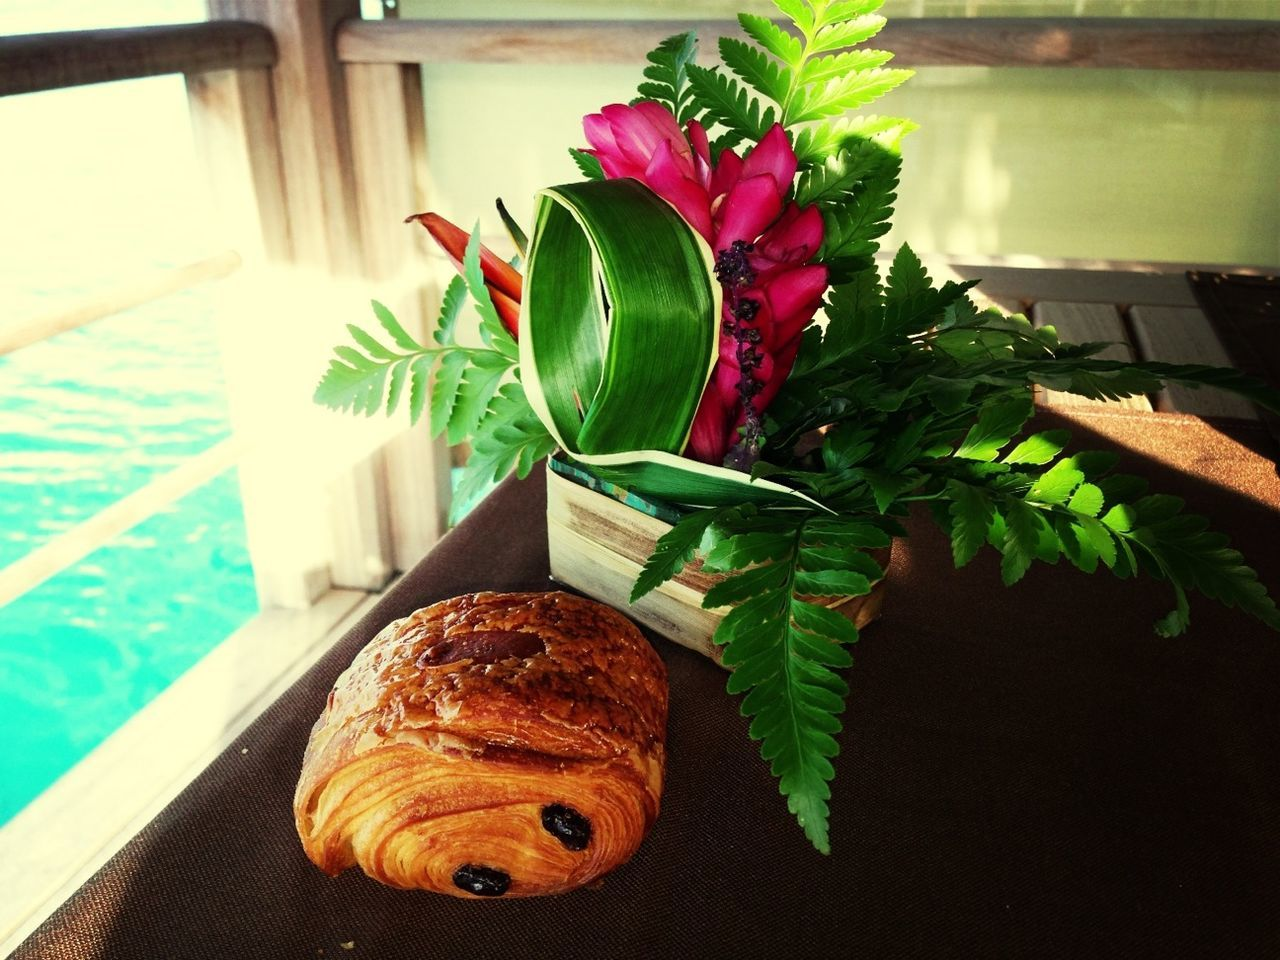 Close-up of croissant and flower pot on table in boat